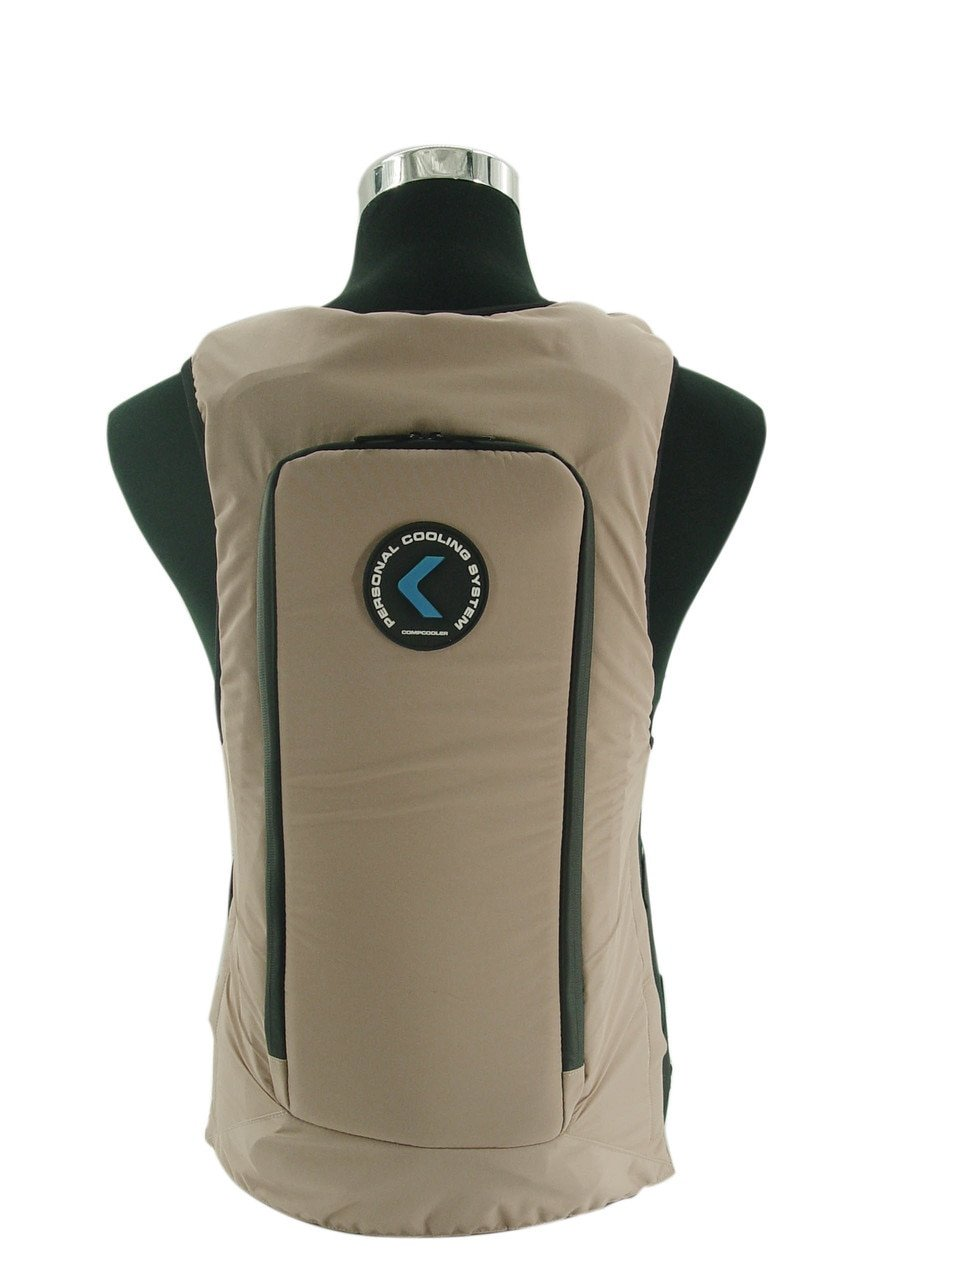 Ice Water Circulating Cooling Vest Tan Detachable Bladder XL-2XL by Compcooler (Image #5)